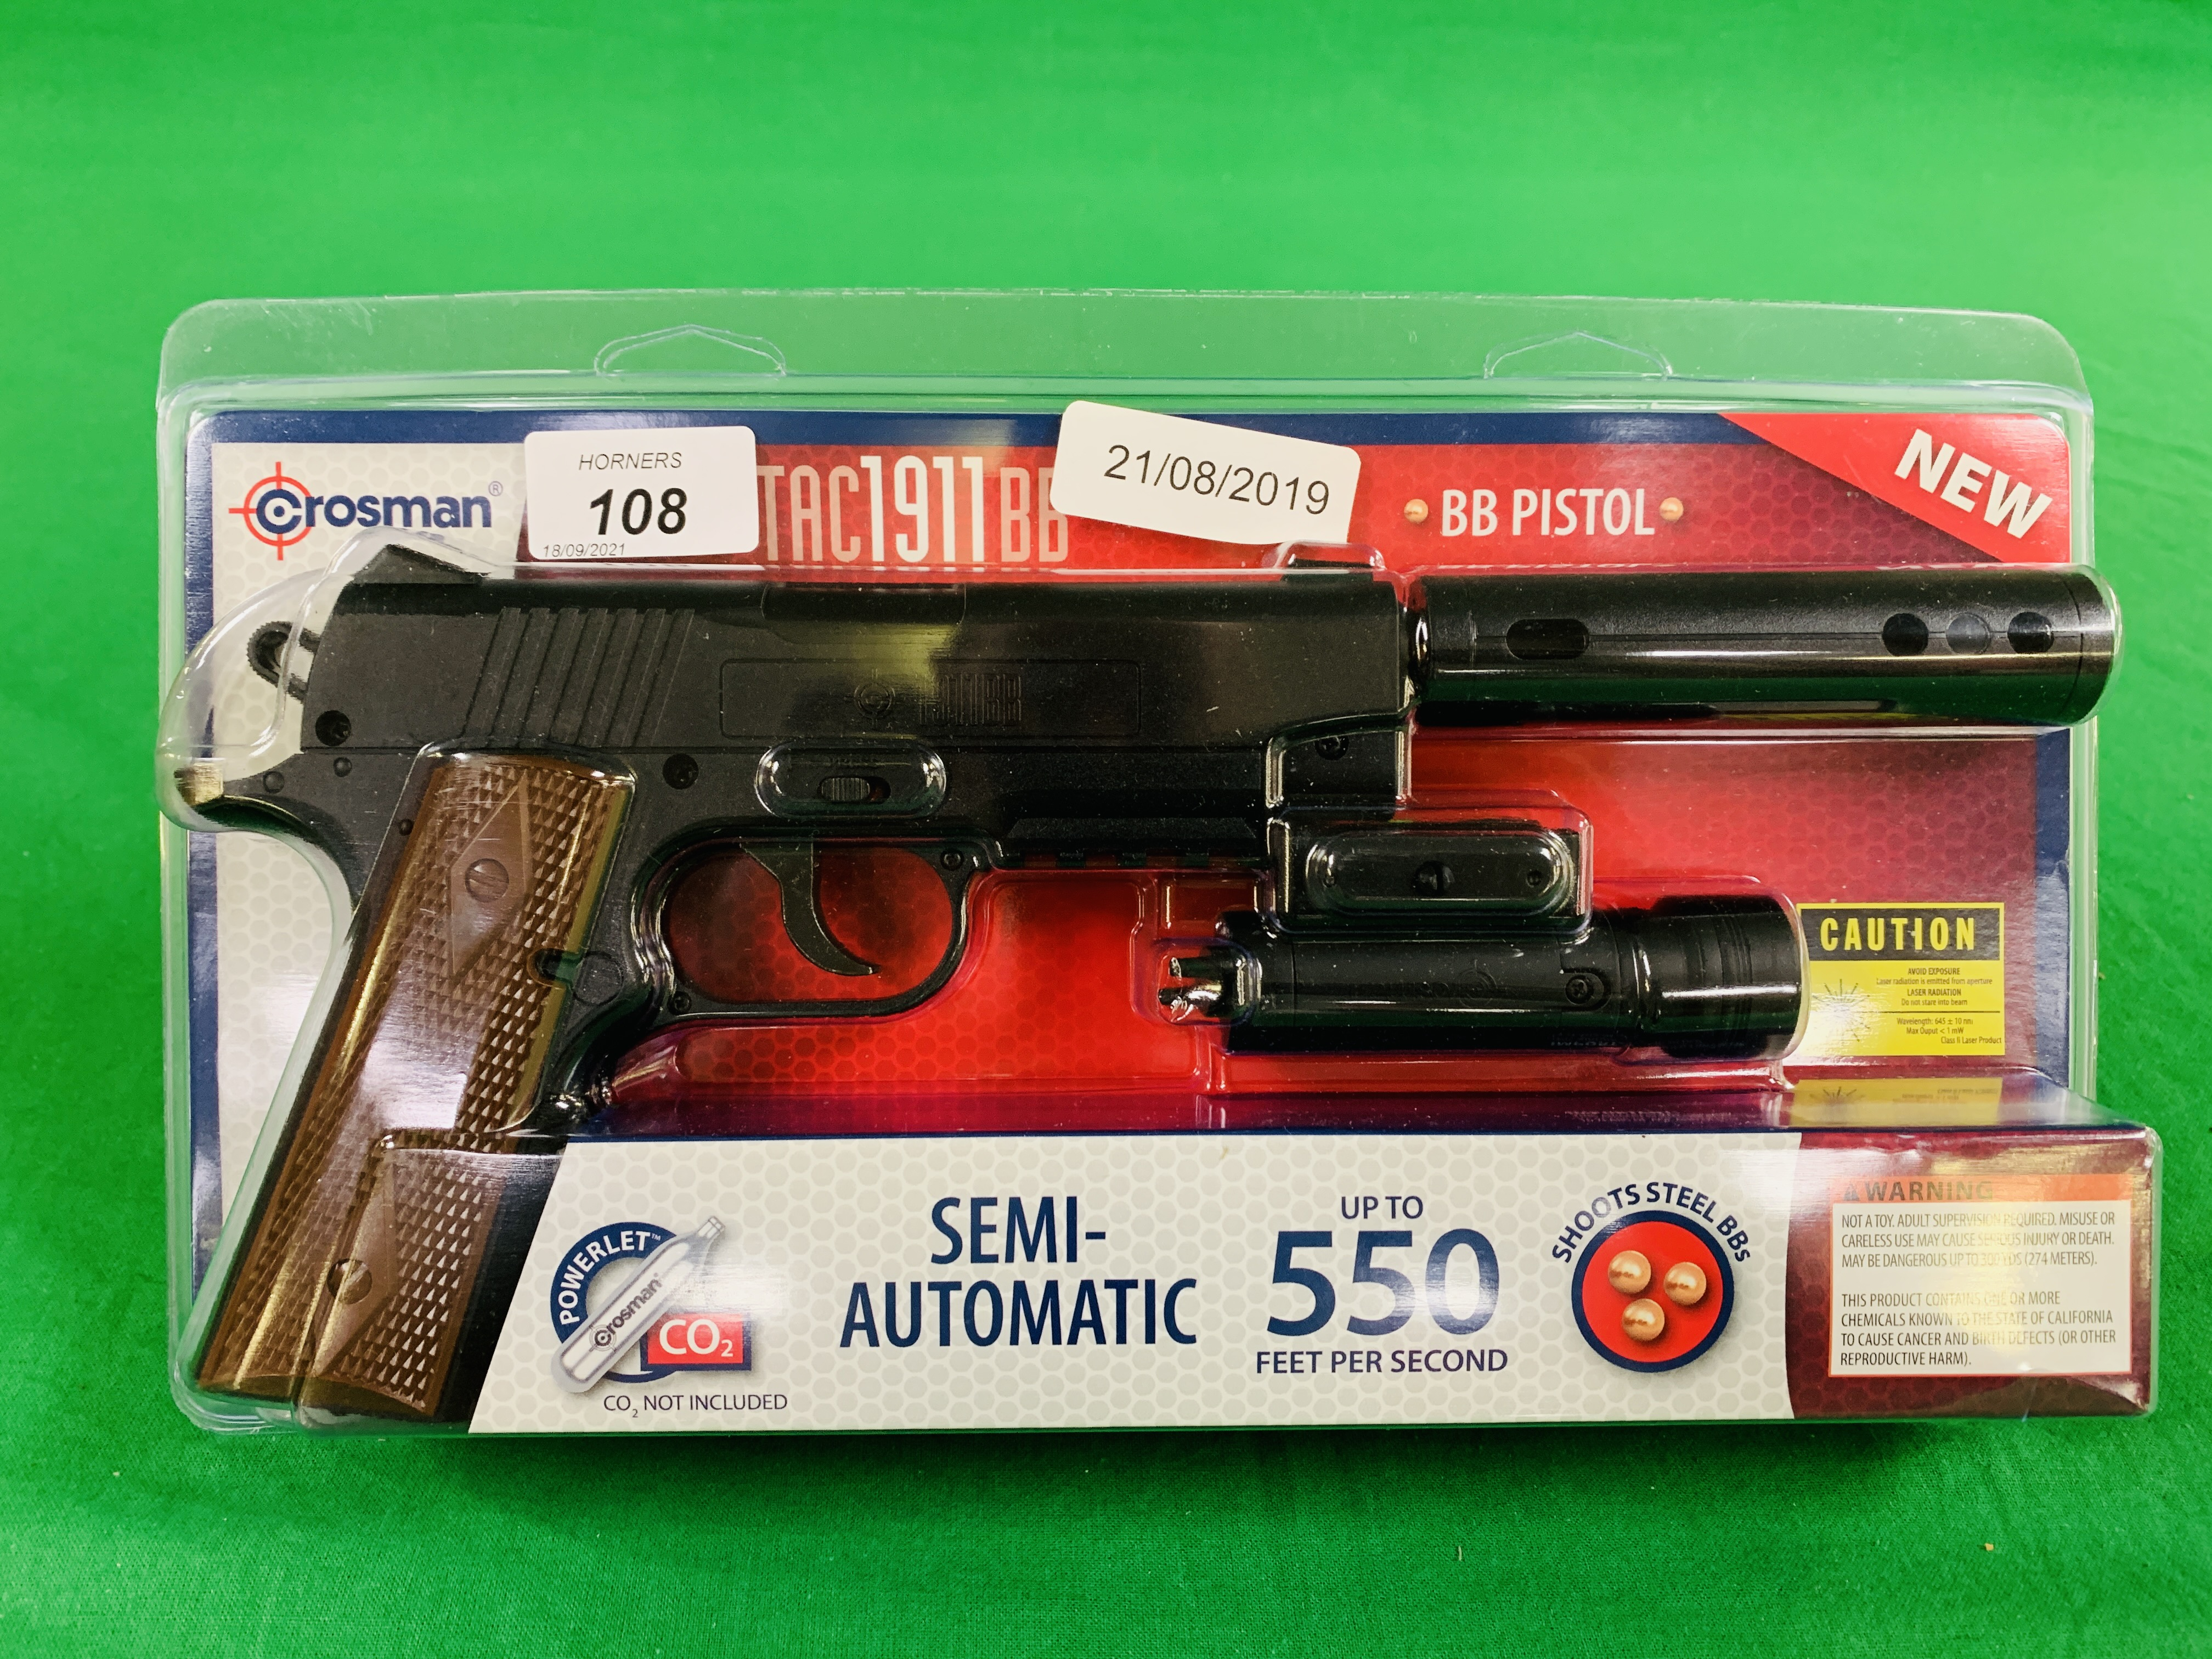 A CROSSMAN TAC SEMI-AUTOMATIC 1911 BB CO² AIR PISTOL WITH LASER BOXED AS NEW - (ALL GUNS TO BE